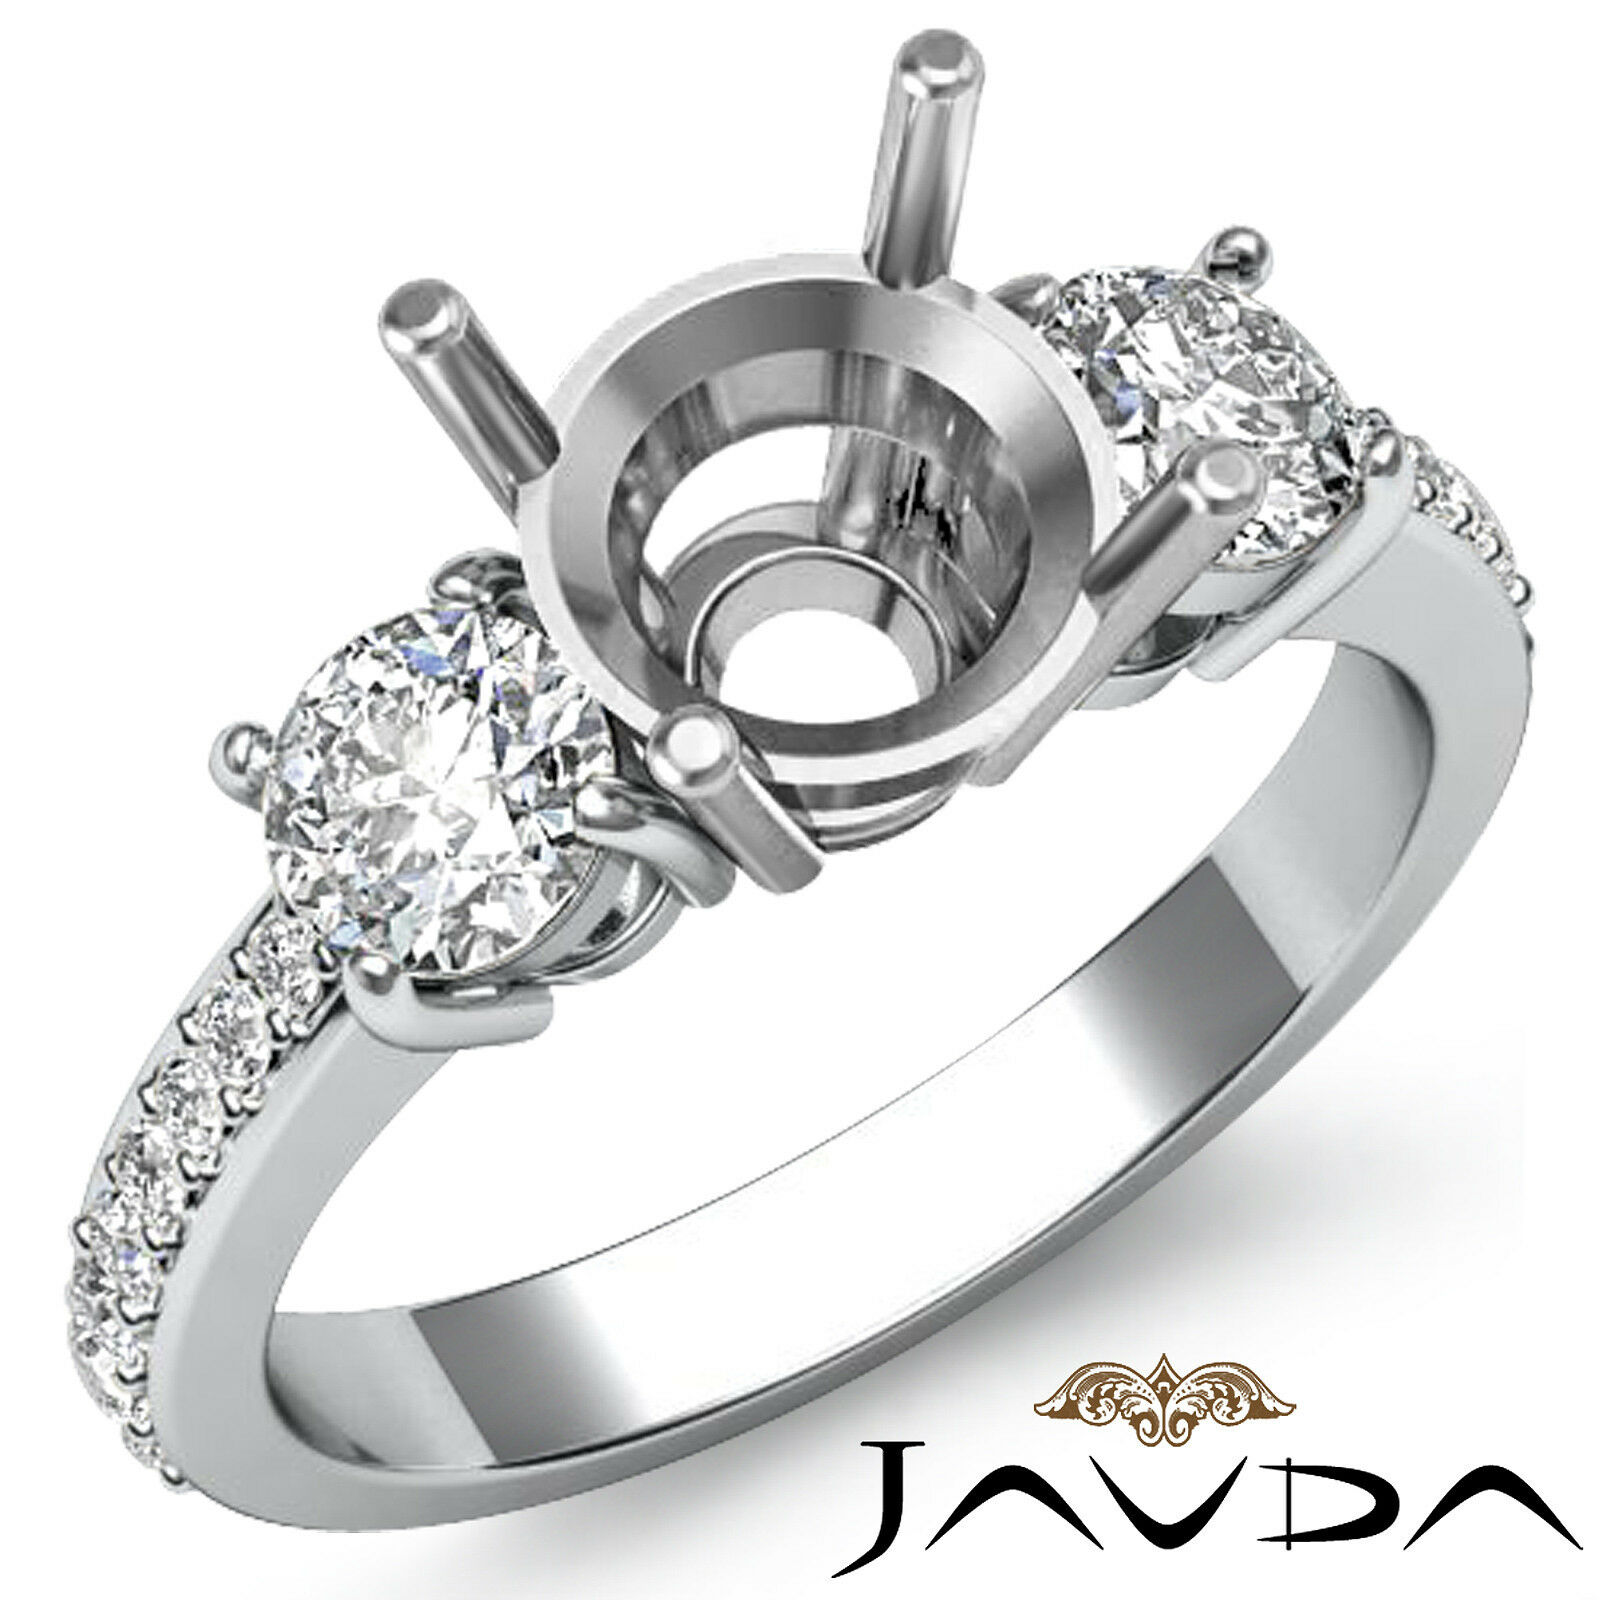 1.58 Ct Diamond Round Ring Vvs1 Channel Set 18 Karat White Gold Size 4.5 6 7.5 9 Fine Jewelry